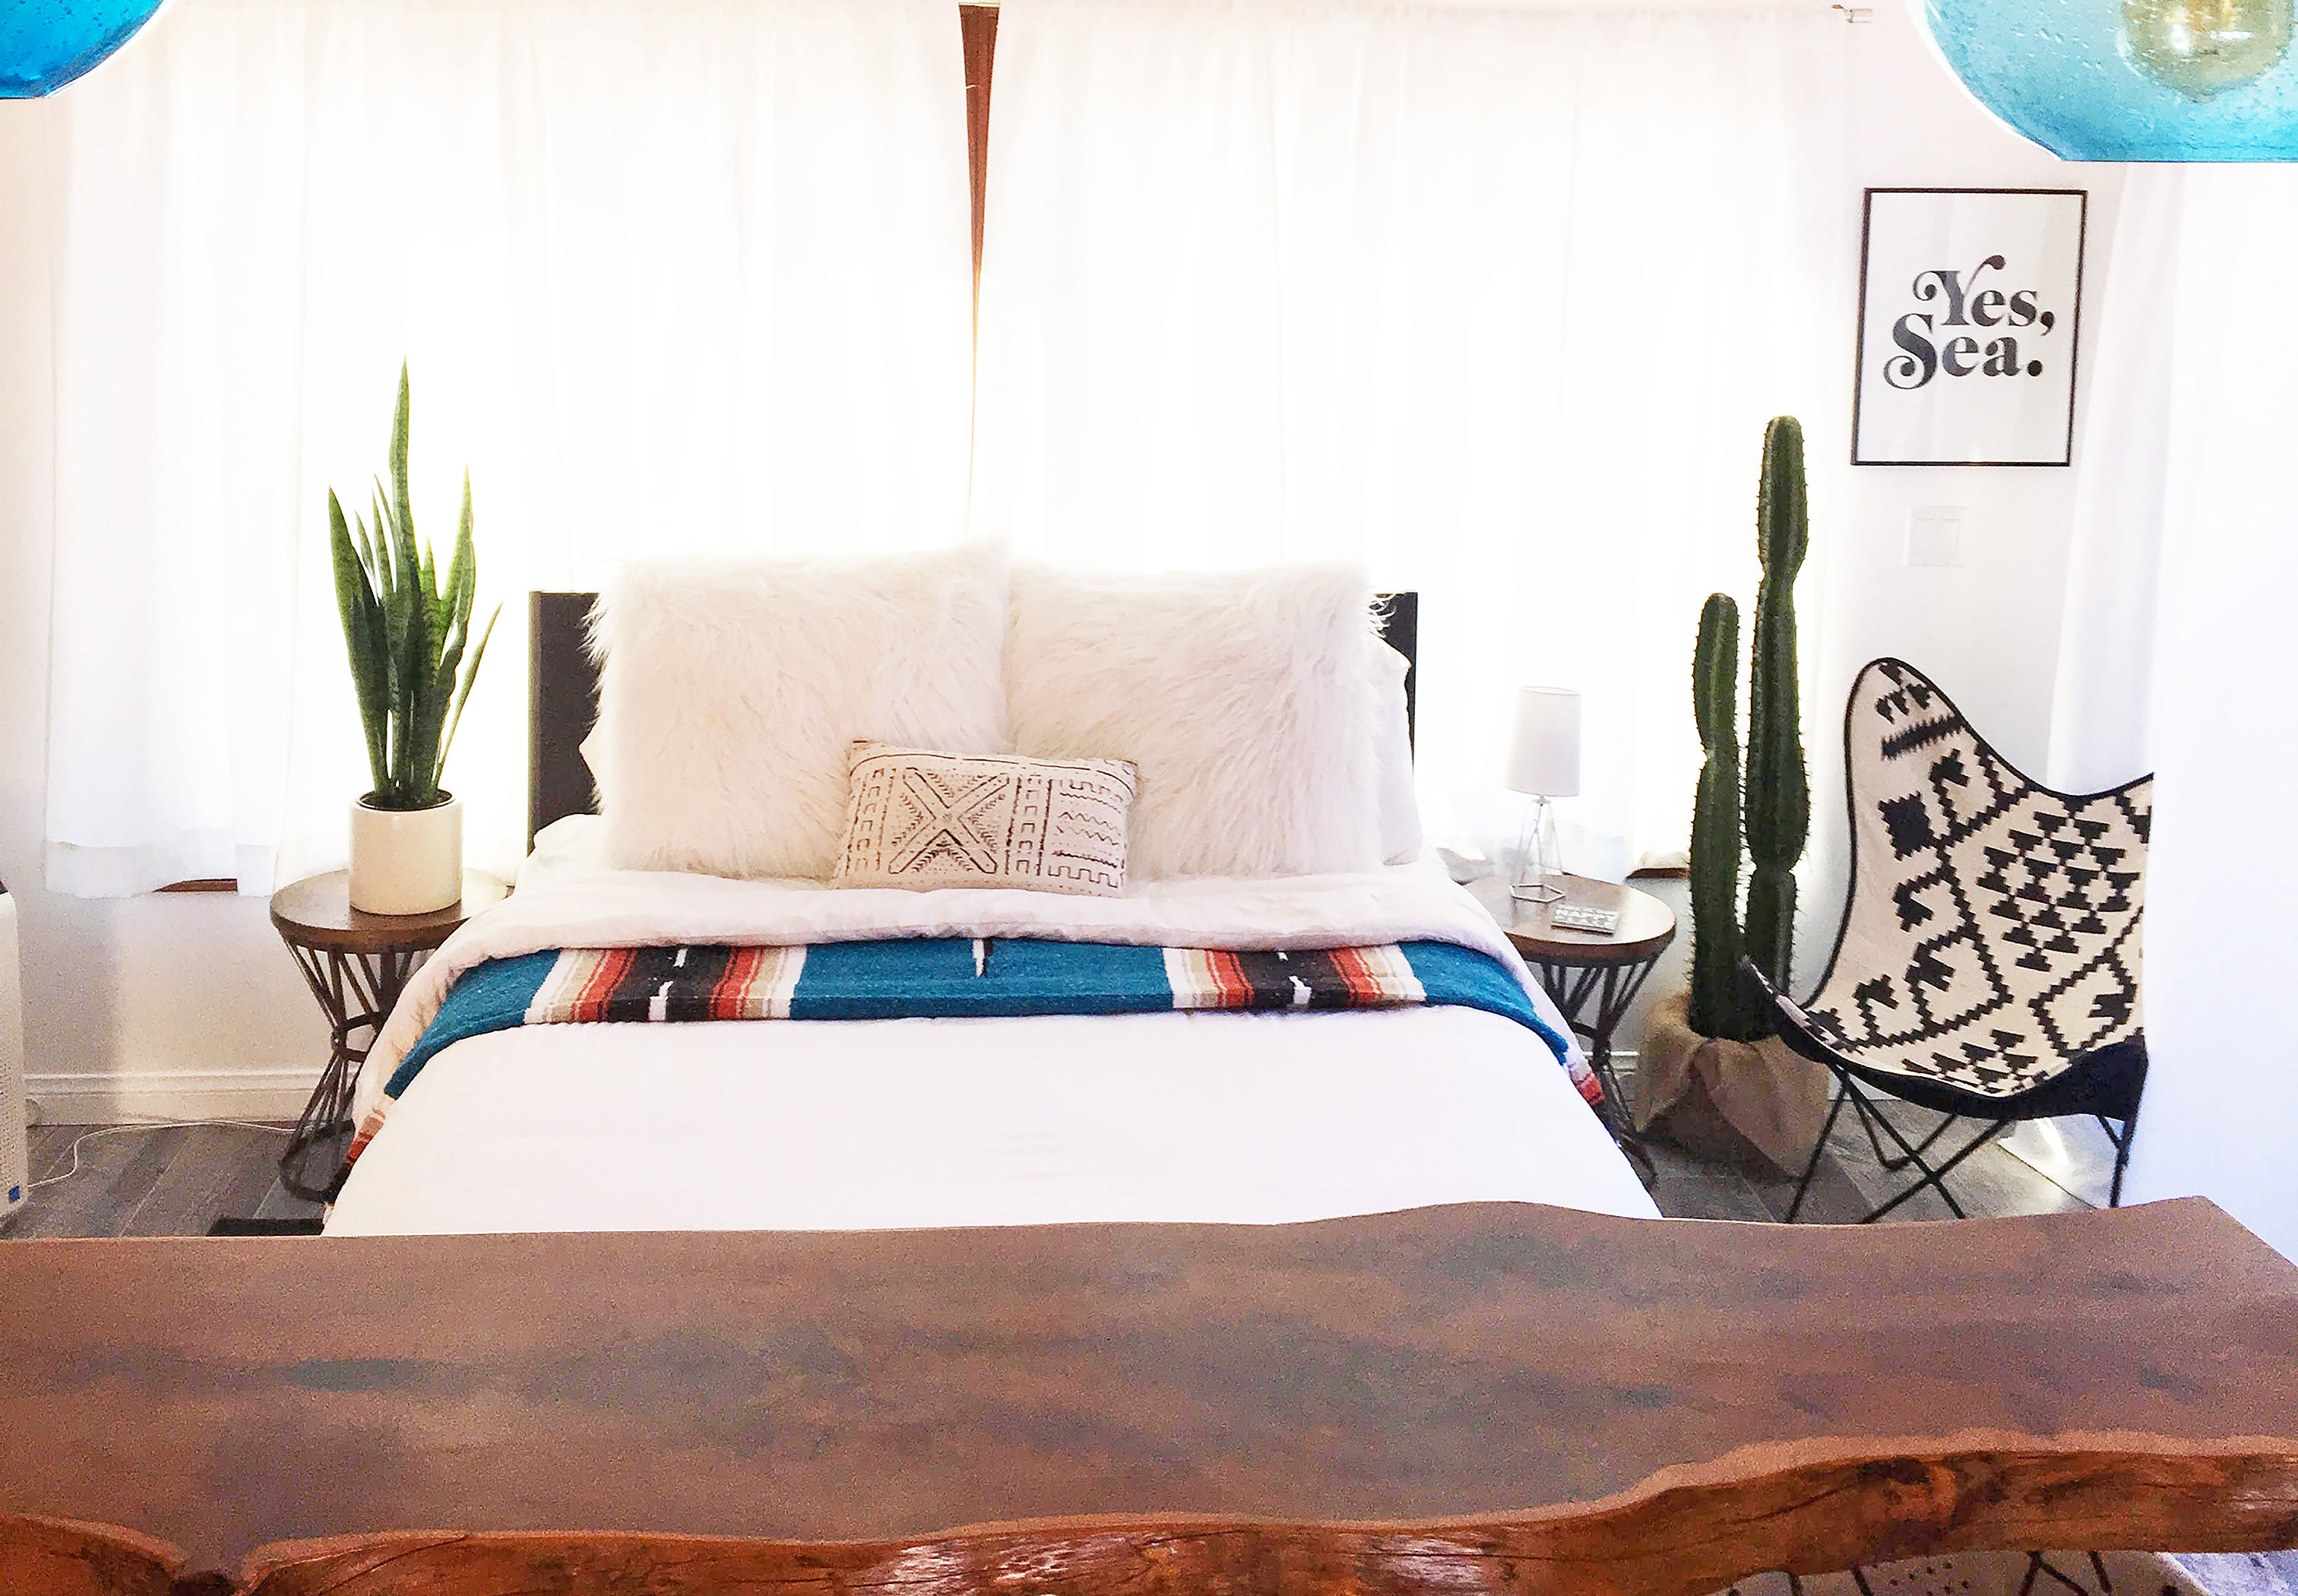 tiny house style bedroom #sdsmallspaces